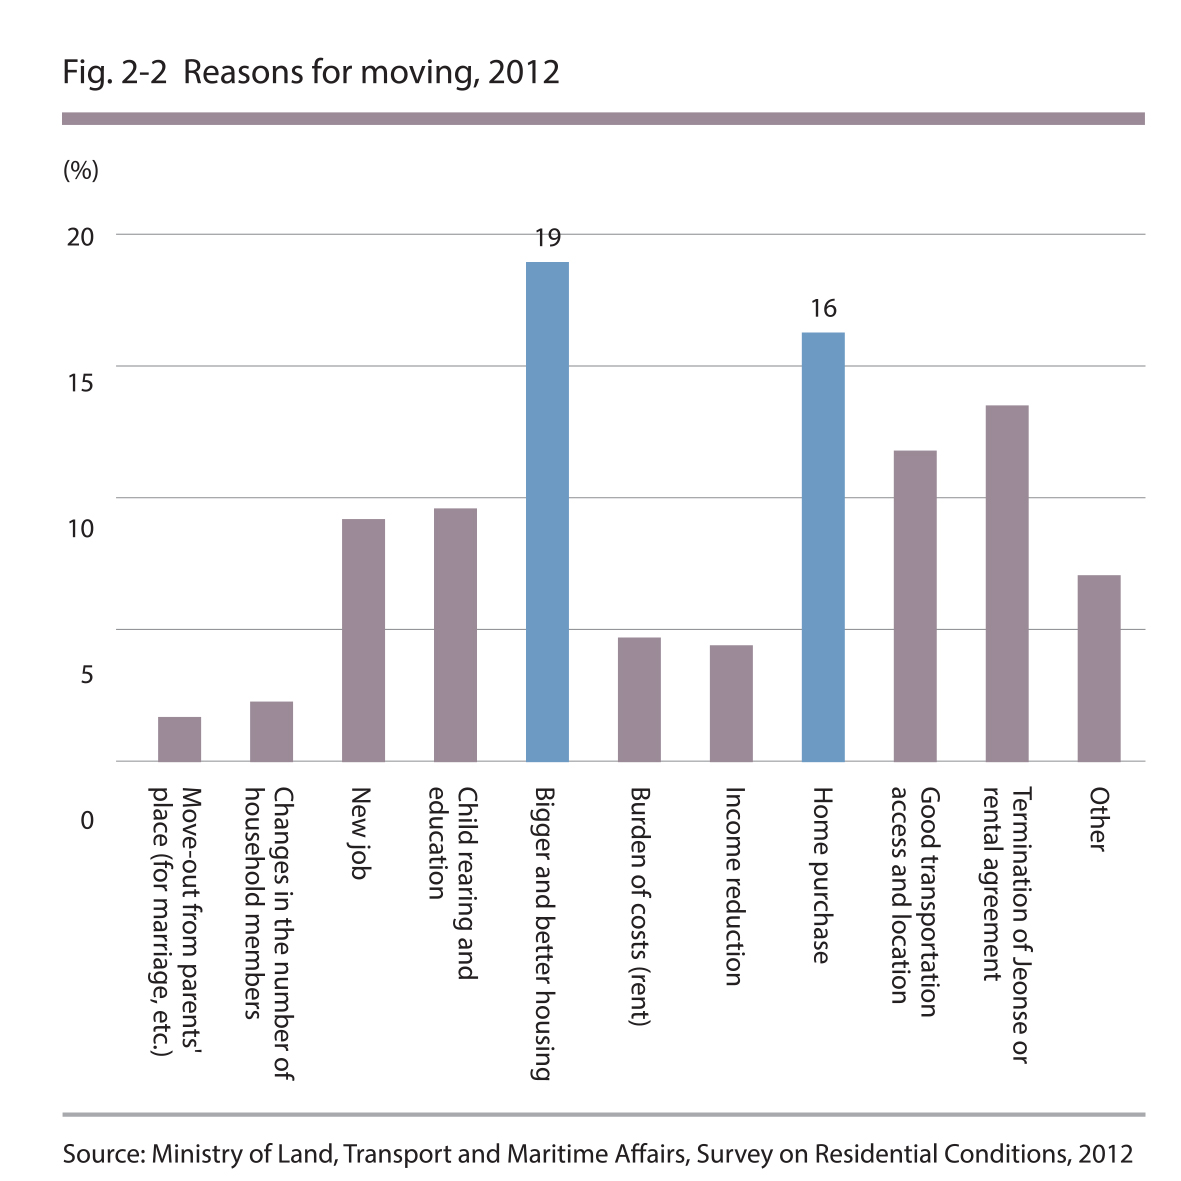 Reasons for moving, 2012